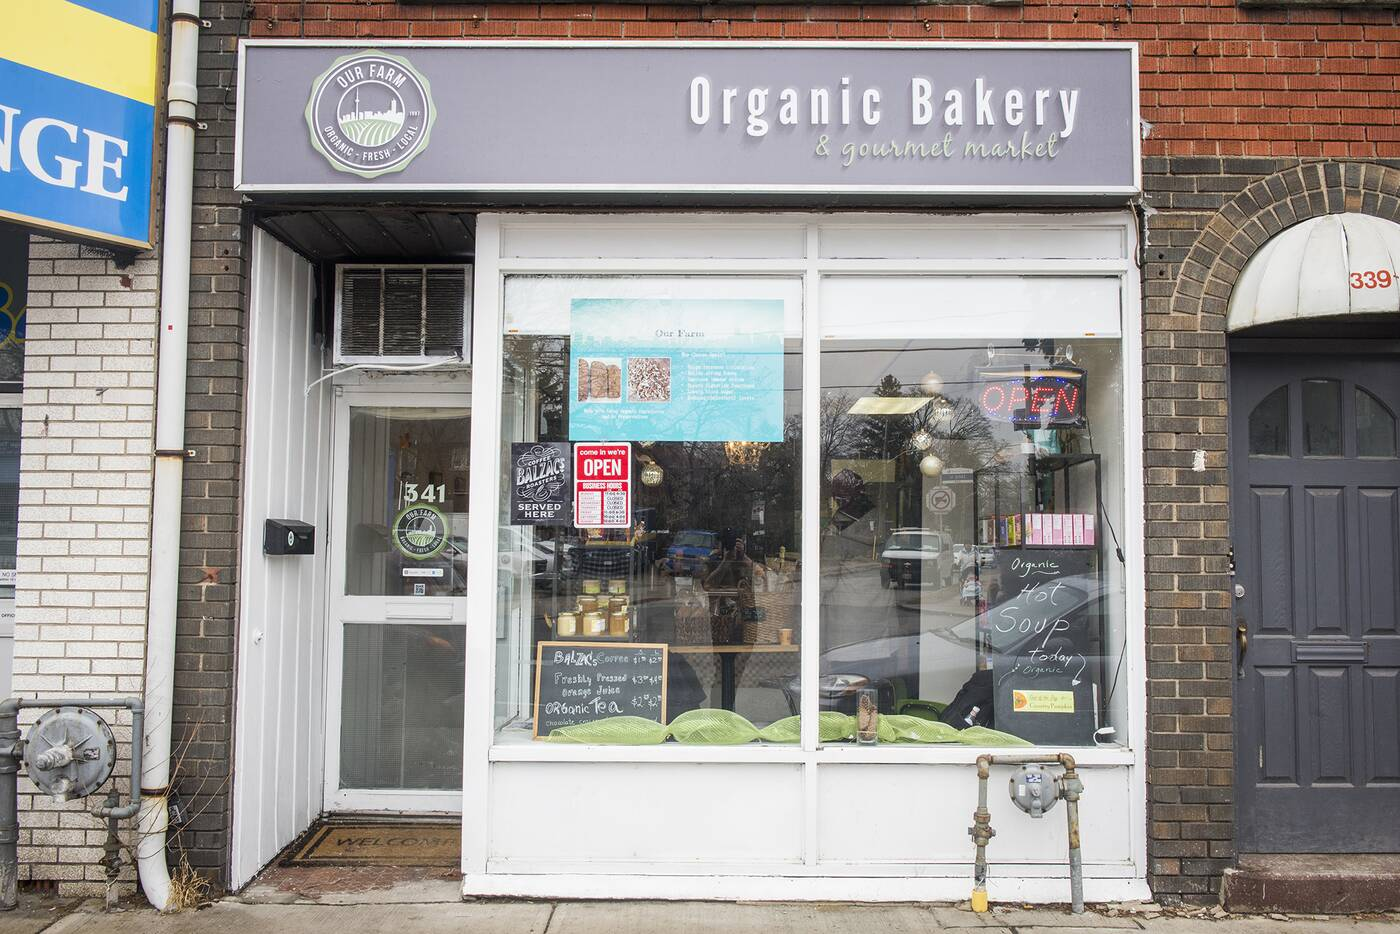 Our Farm Organic Bakery